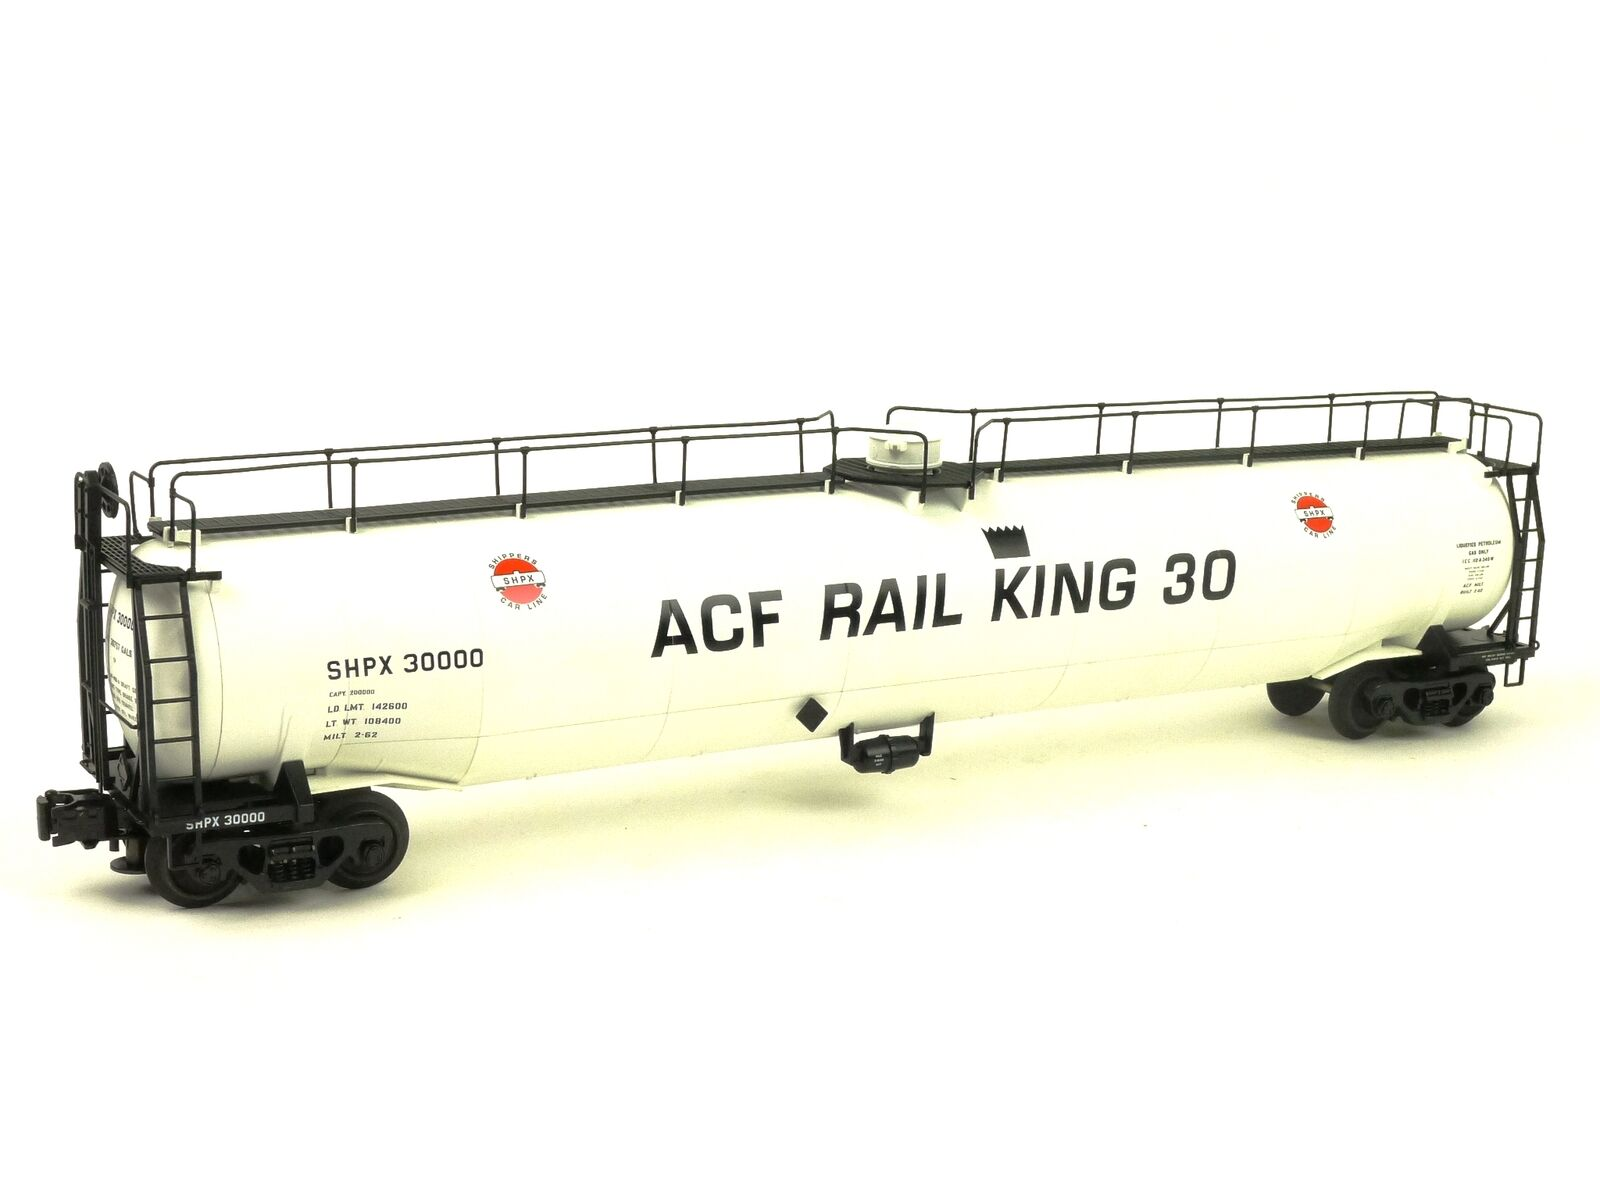 Atlas Big O 6408-2 ACF Rail King 30 ACF 33,000 Gallon Tank Car O Scale Railroads